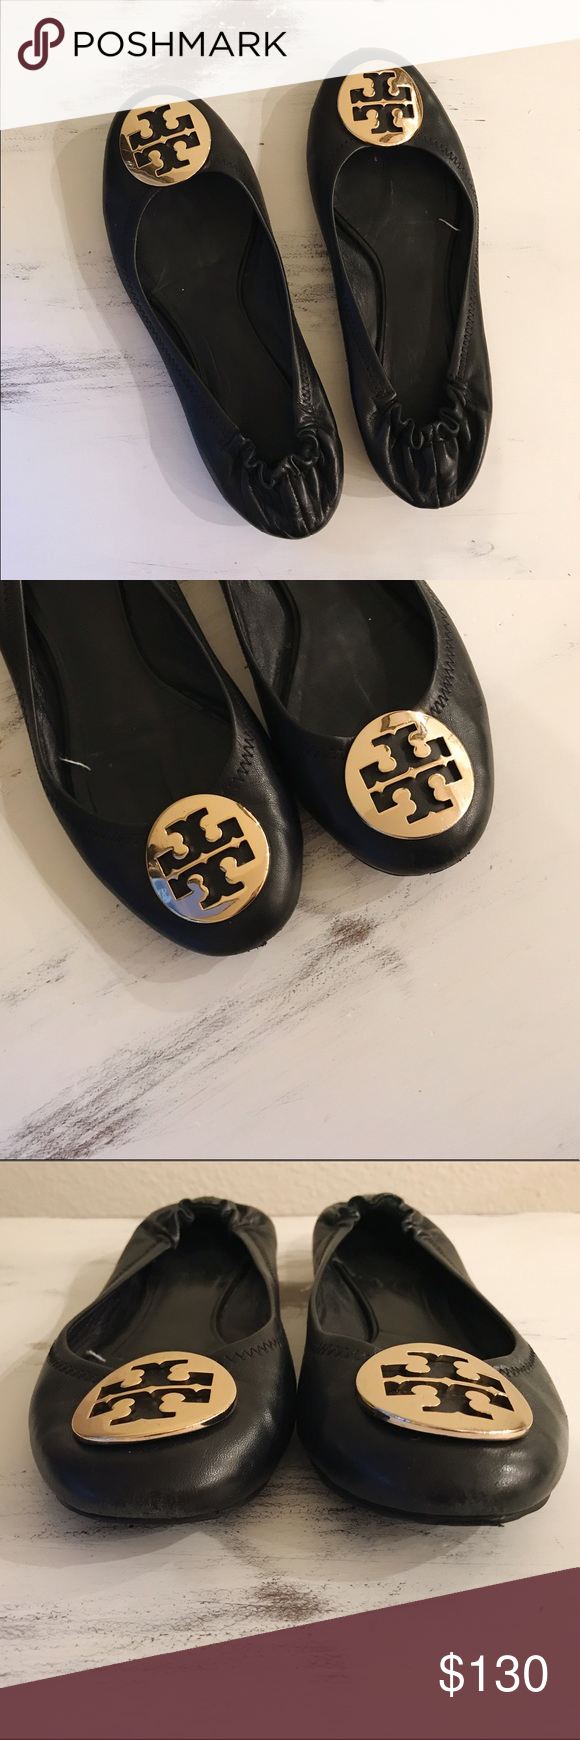 9f07b89f575 Tory Burch REVA ballet flats The iconic Tory Burch Reva ballet flat. Black  leather with gold logo. Minor scuffs and wear but still in great condition.